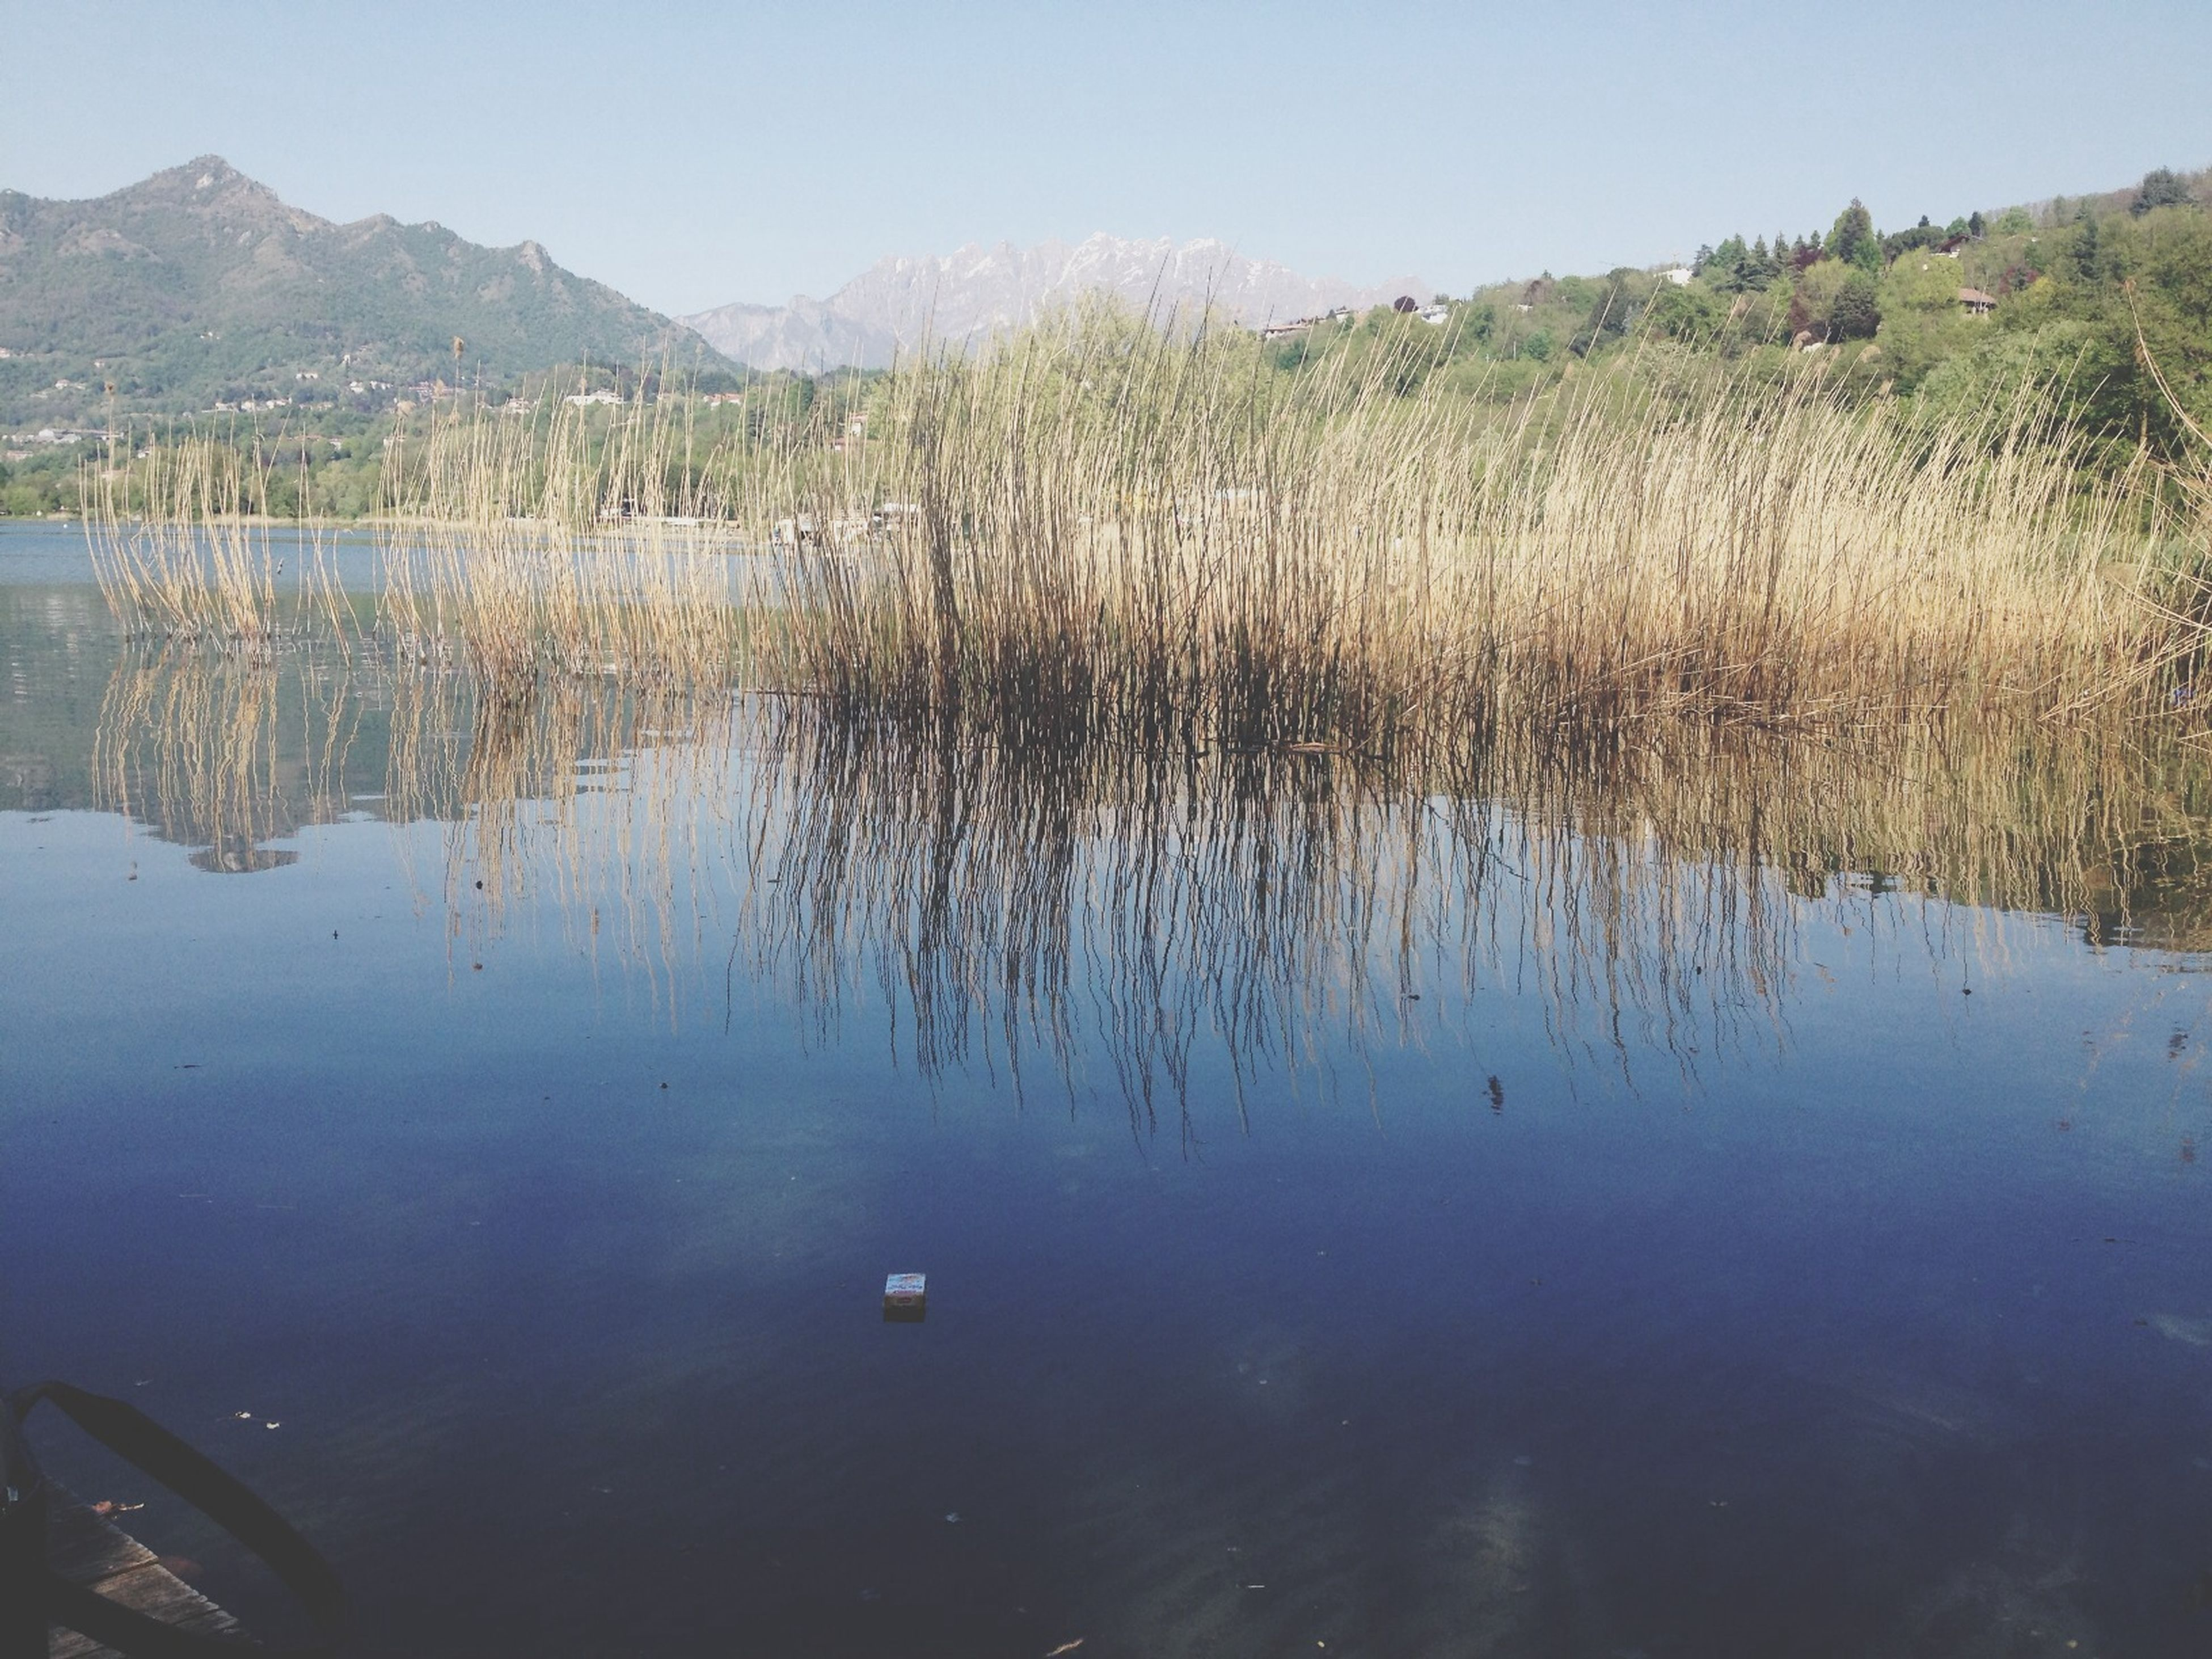 water, reflection, lake, tranquility, tranquil scene, scenics, waterfront, beauty in nature, nature, clear sky, mountain, standing water, sky, idyllic, tree, calm, non-urban scene, day, outdoors, no people